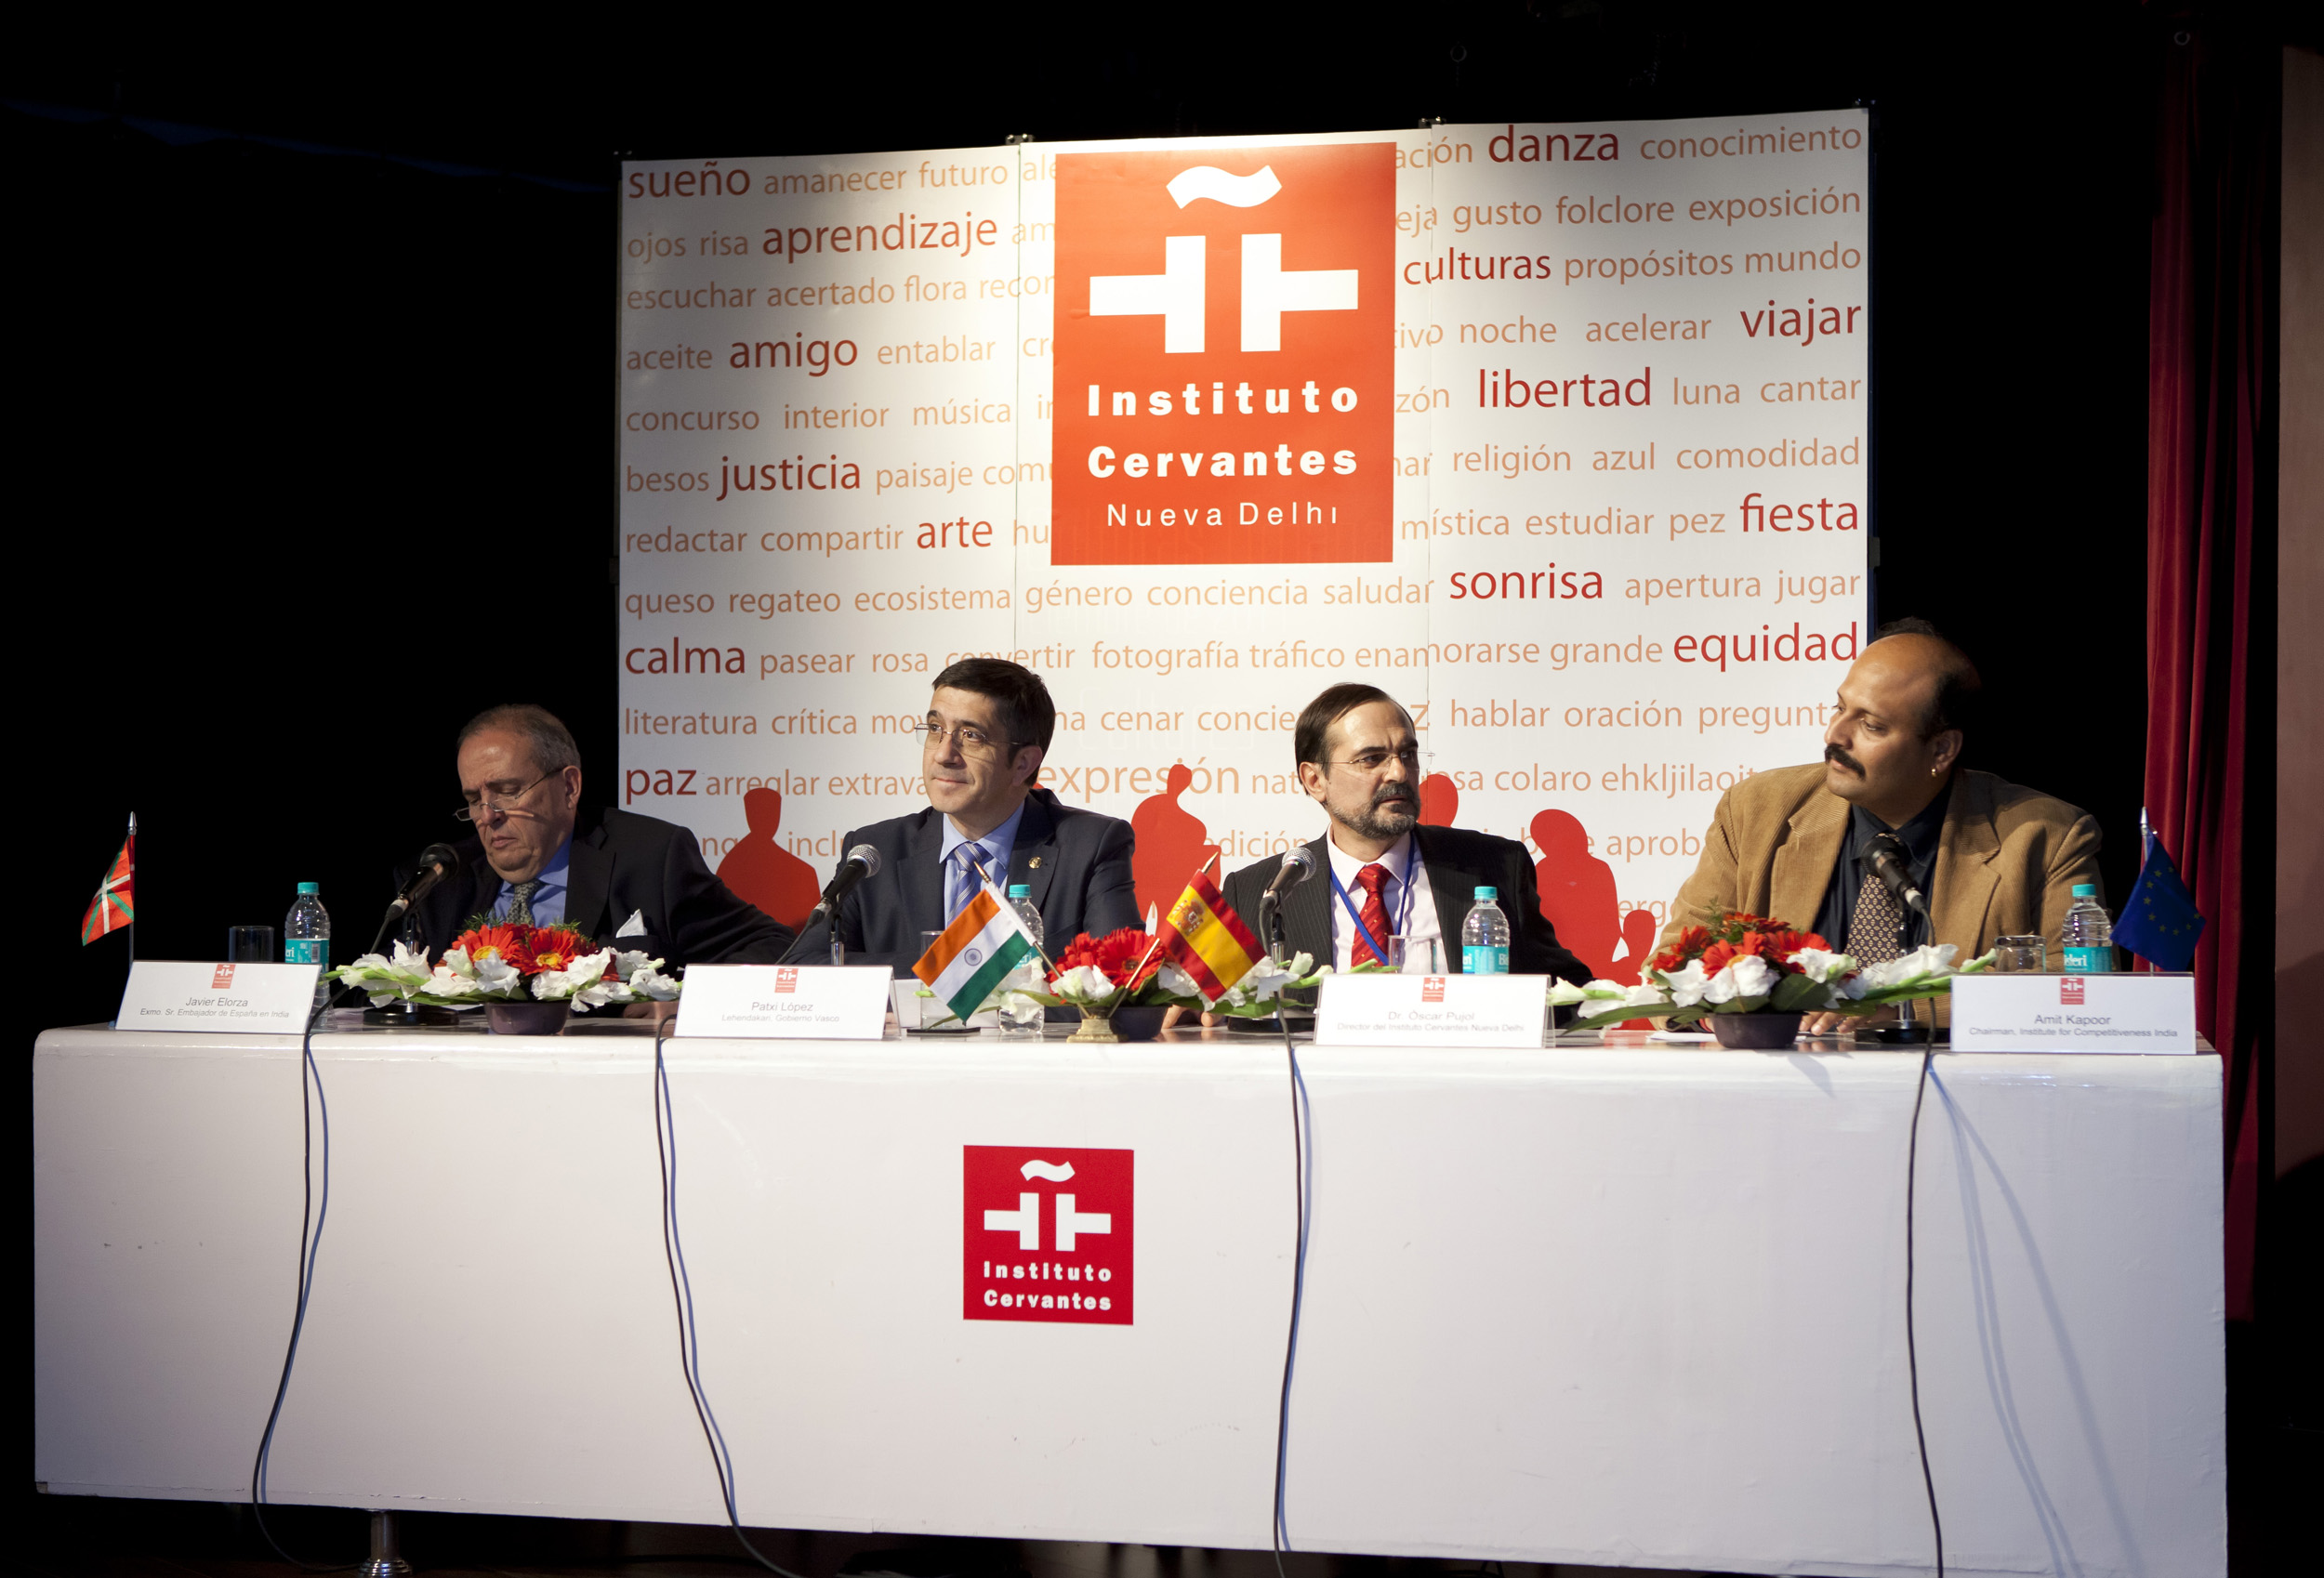 2012_03_21_jornadas1.jpg